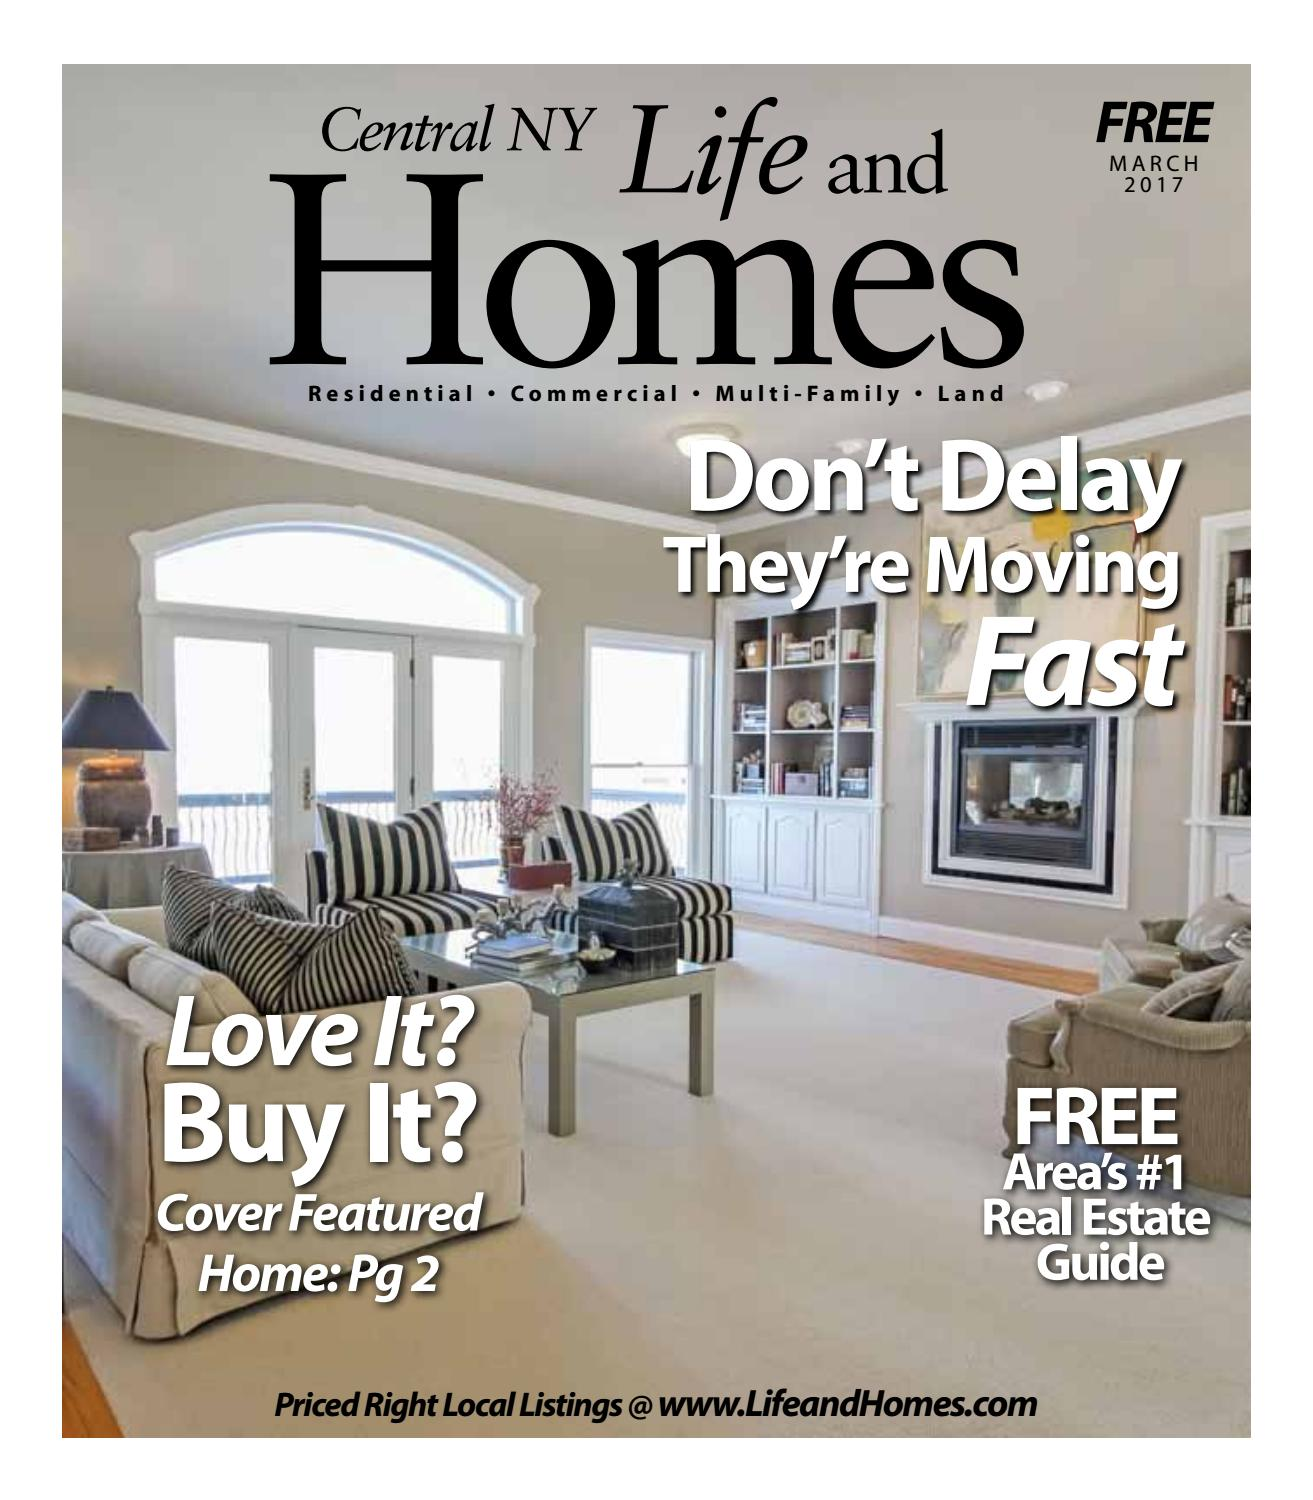 e6b46c05bcd2 Life and Homes Central New York by Stephen Lisi - issuu